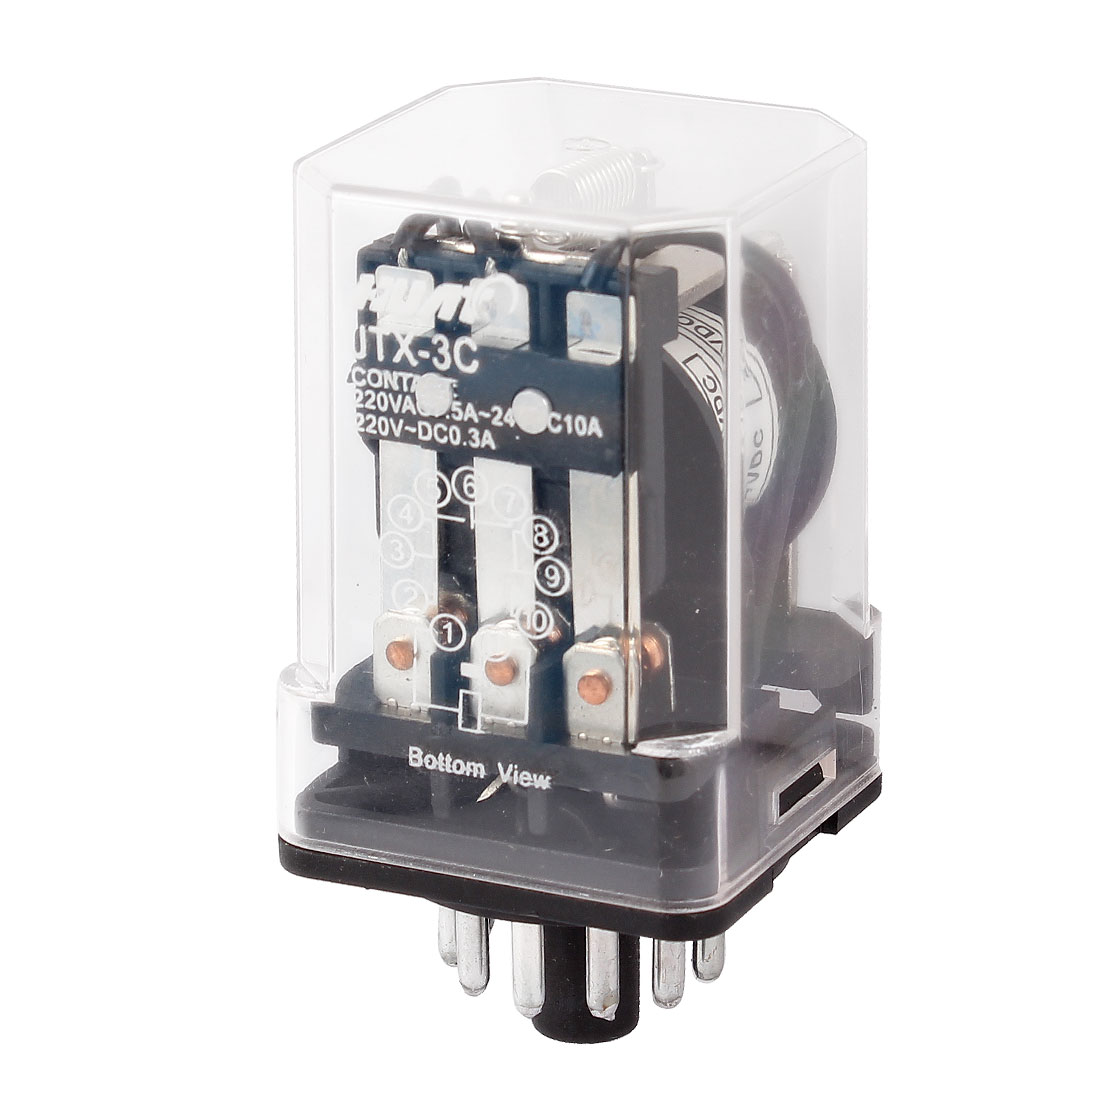 Motor Control 11 Pin 3PDT Electromagnetic Relay DC 24V Coil JTX-3C